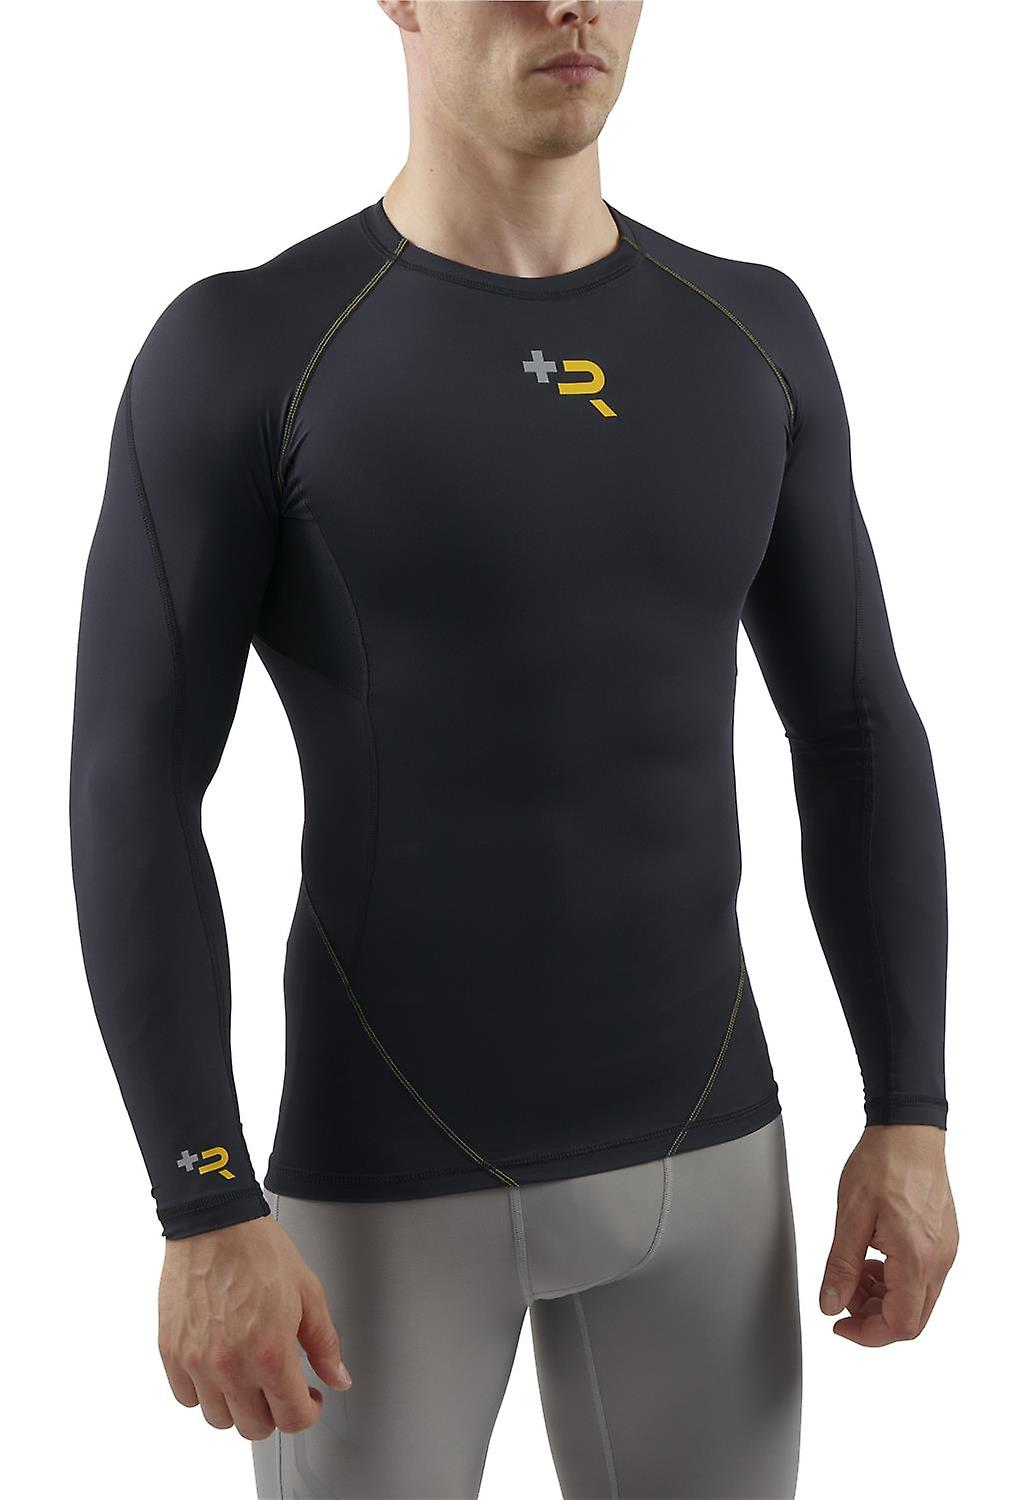 Sub Sports Mens Long Sleeve Vest Top Muscle Recovery Compression Post Work Out